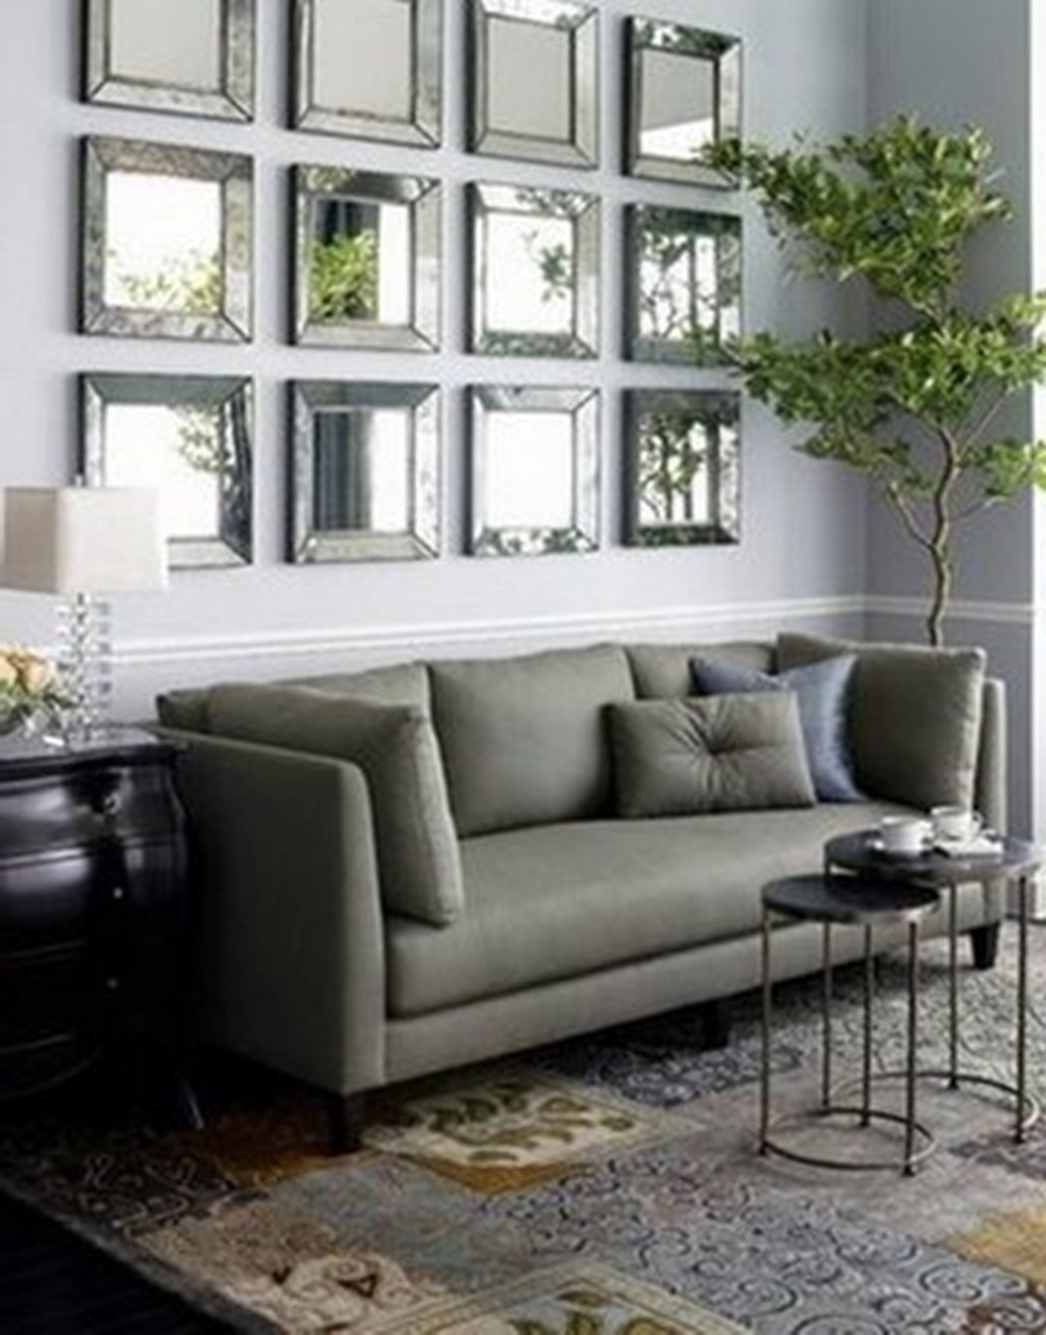 2019 Living Room : Living Room Mirror Wall With Square Silver Pertaining To Large Square Wall Mirrors (View 3 of 20)